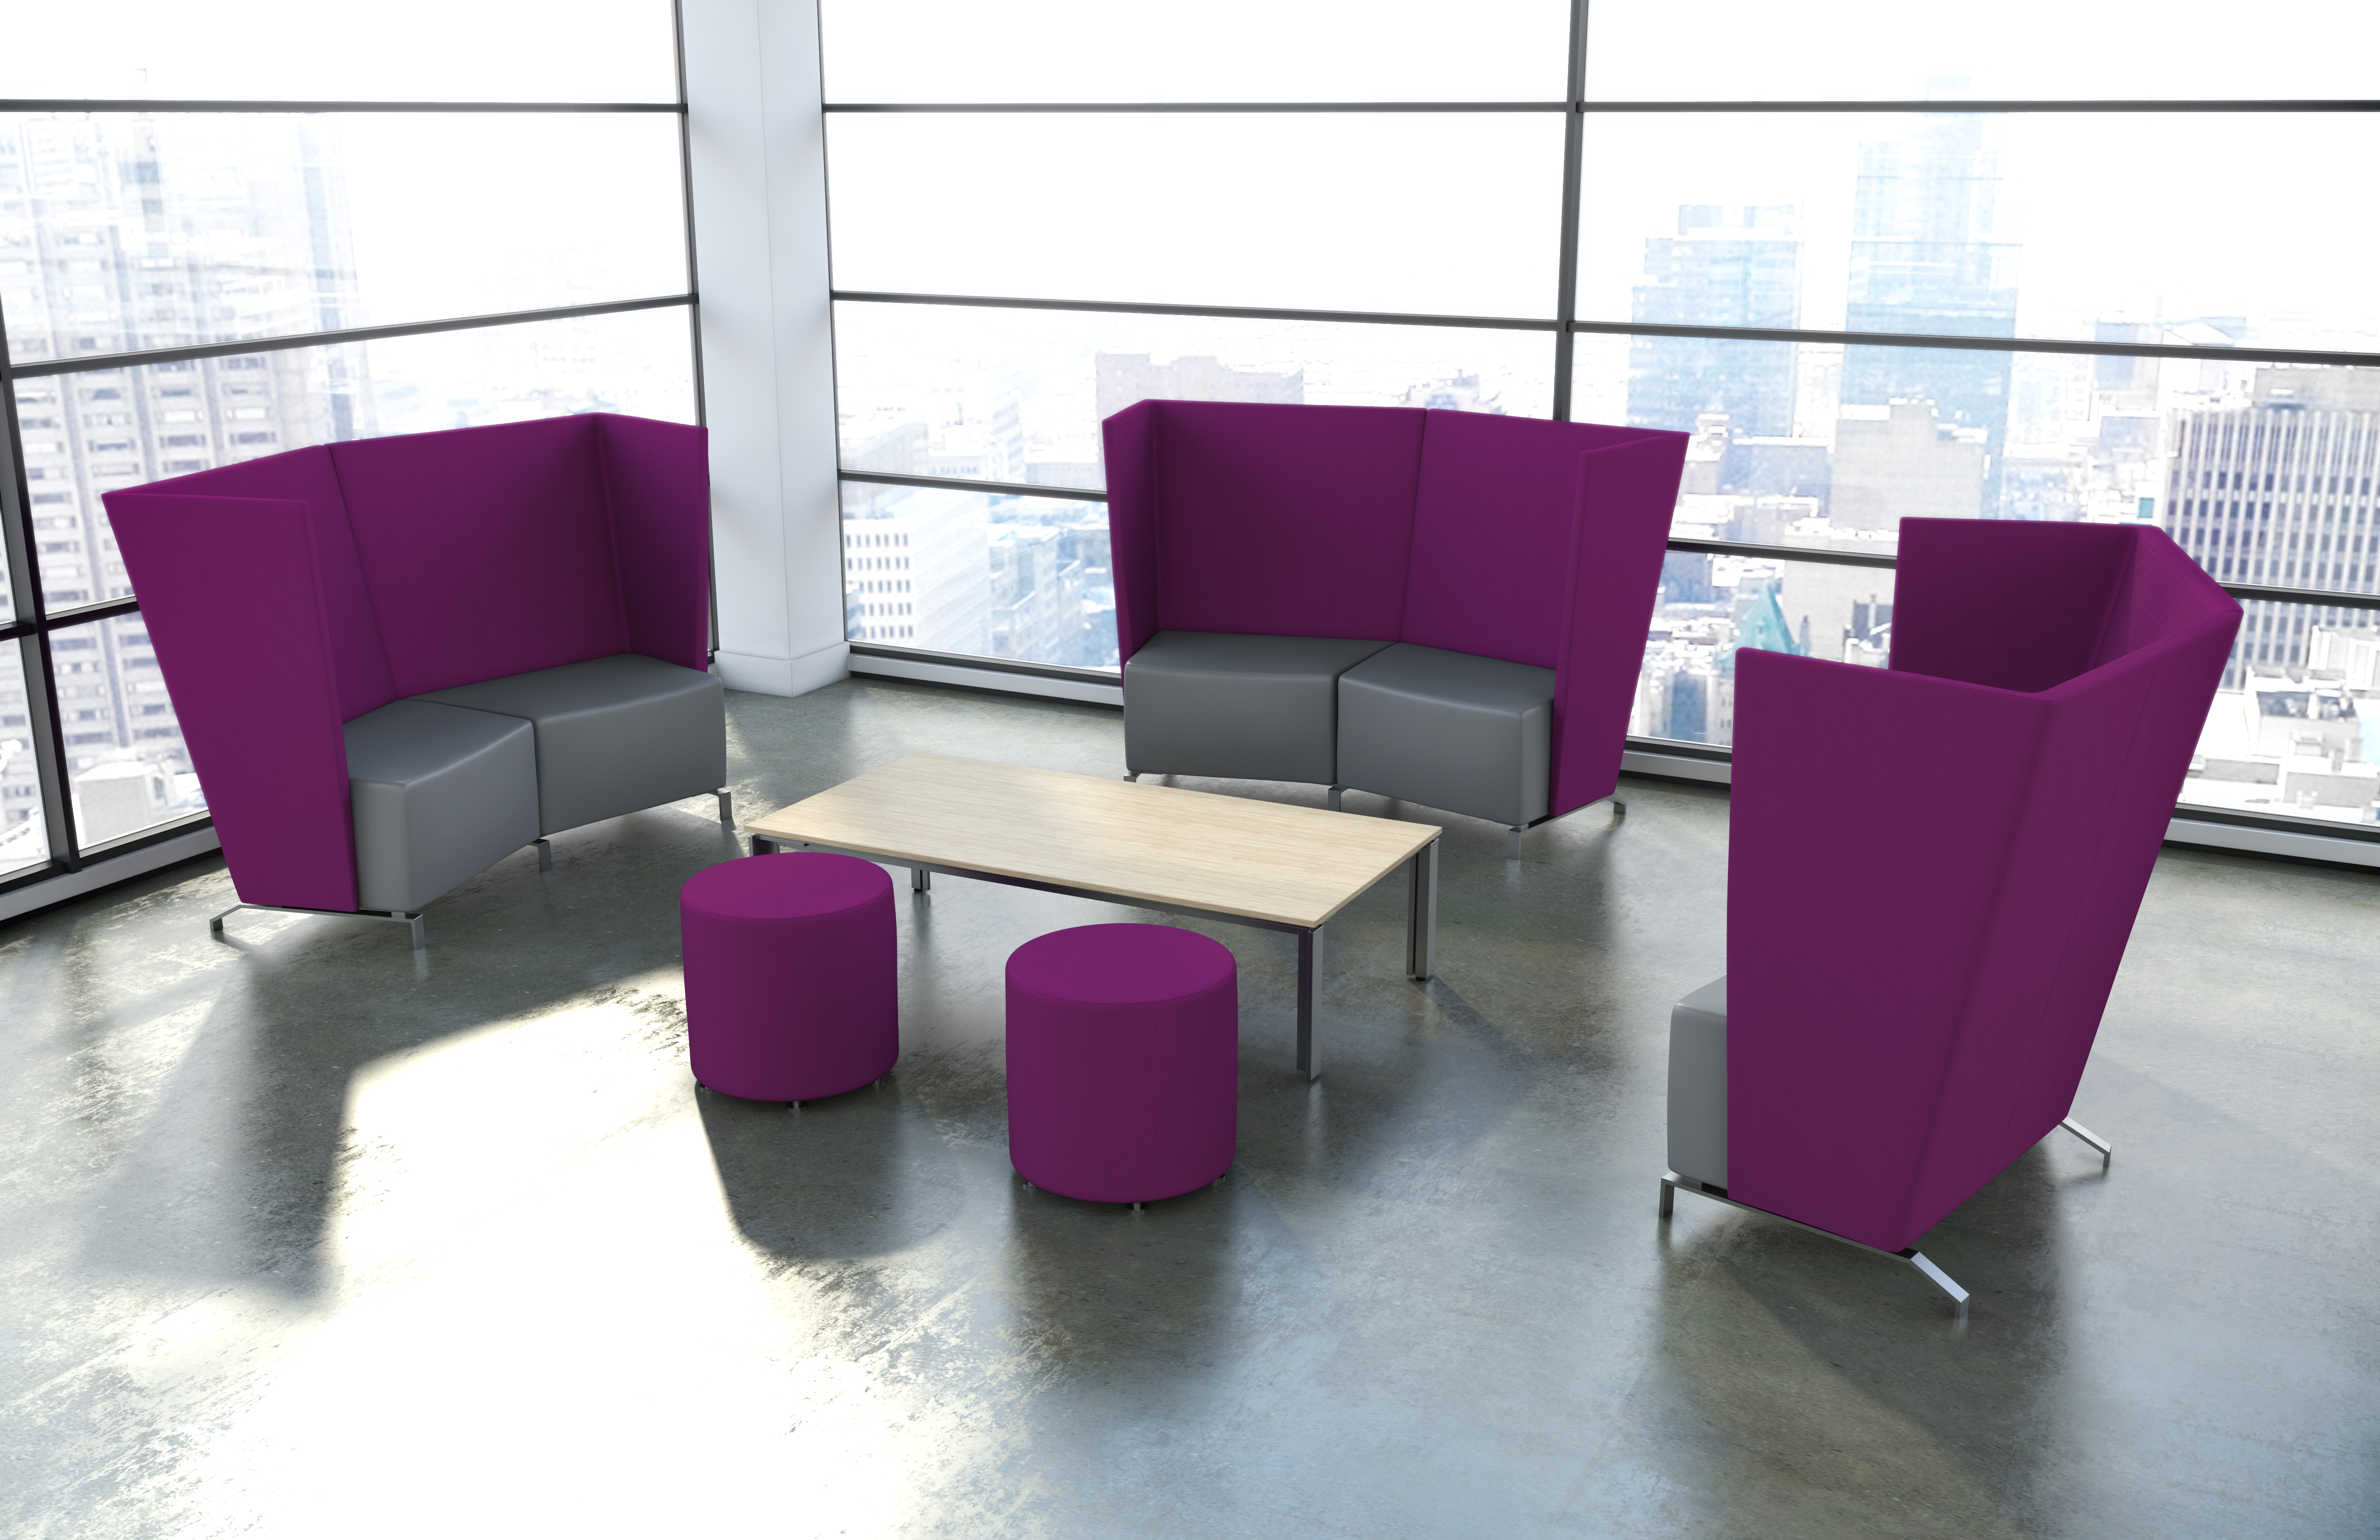 exciting colorful modern furniture | Office Color Trends for Fall 2016 – Modern Office Furniture